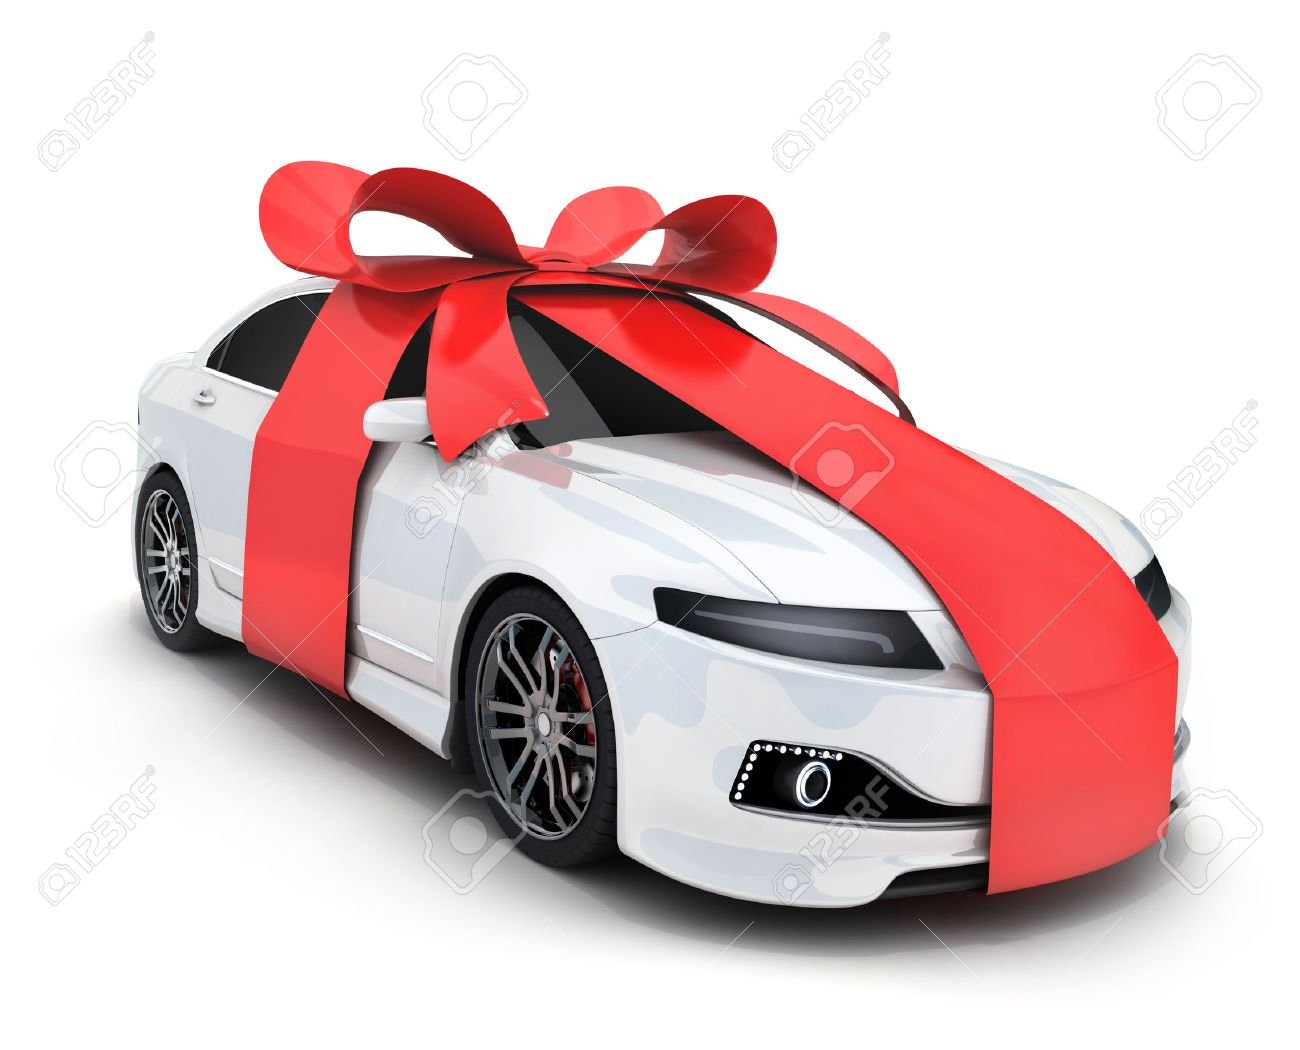 Car and ribbon gift on white background (done in 3d rendering) - 65663336